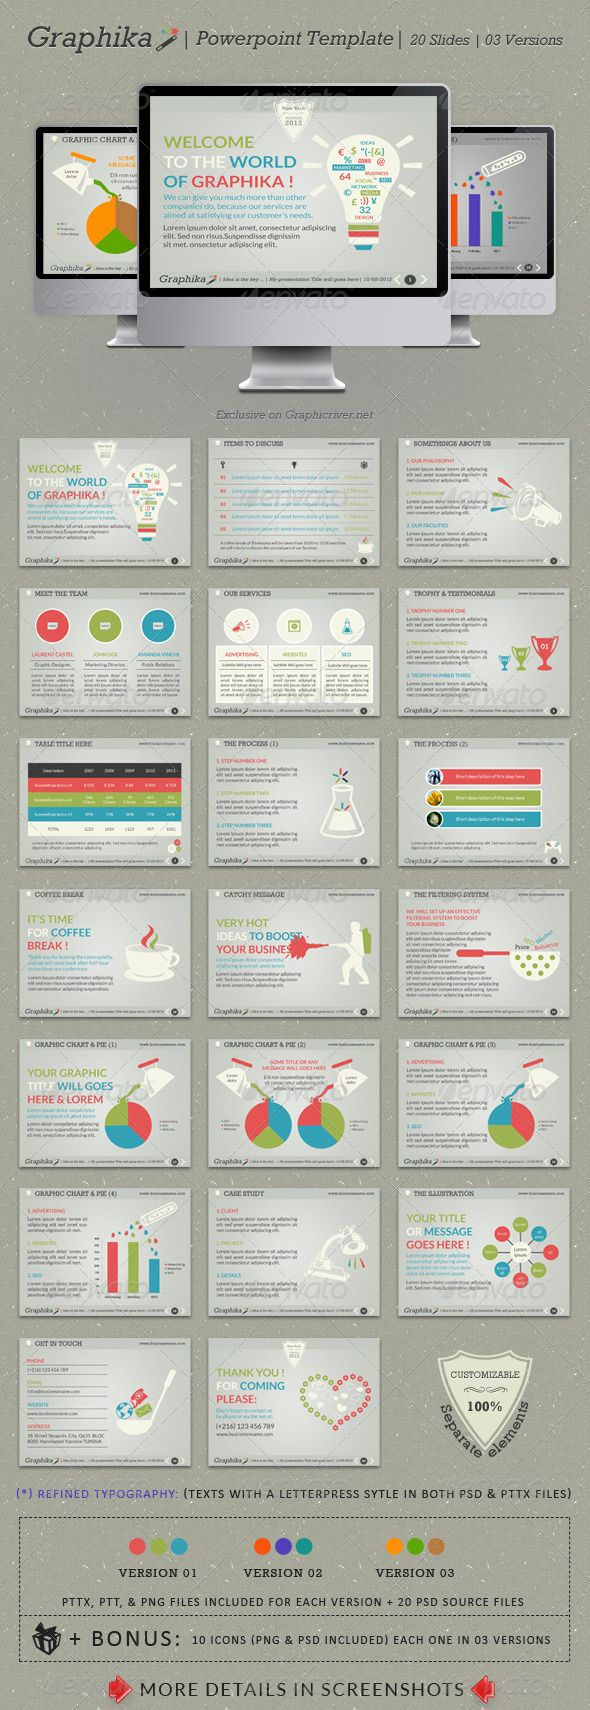 Graphika-Powerpoint-Template.jpg (590×1710)